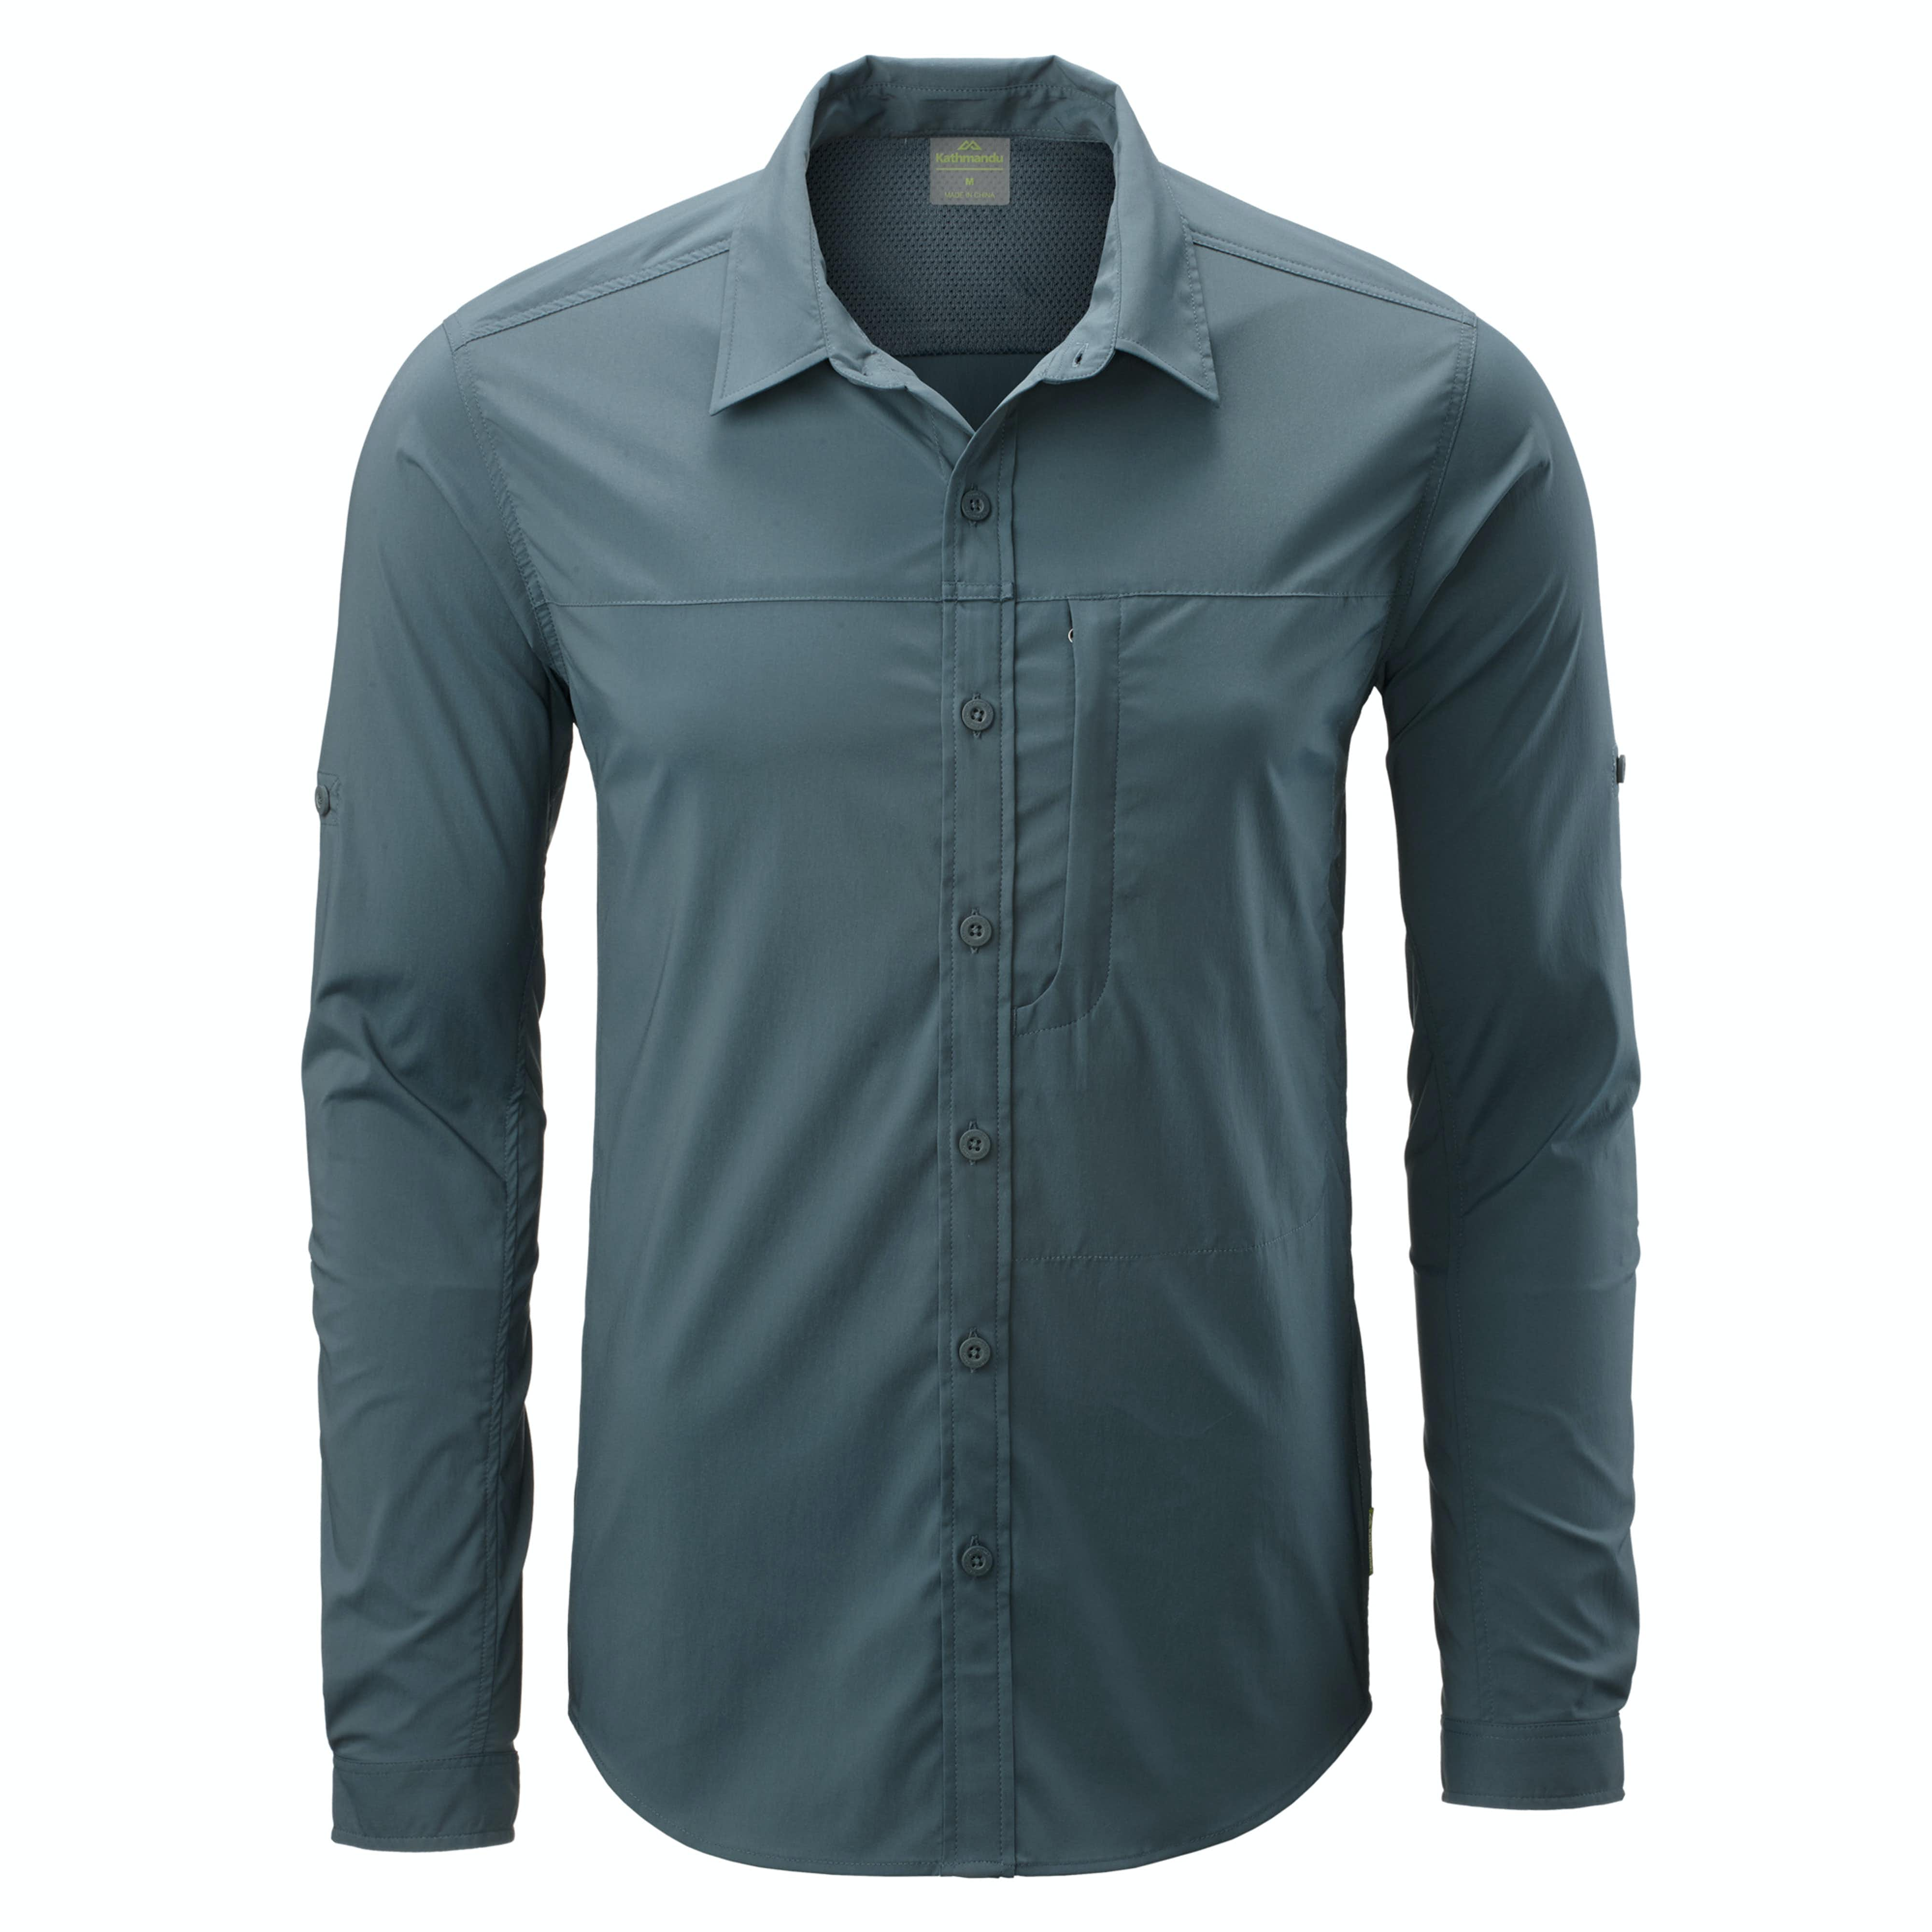 c7f628830 Mens Outdoor Clothing for Sale Online | Kathmandu US